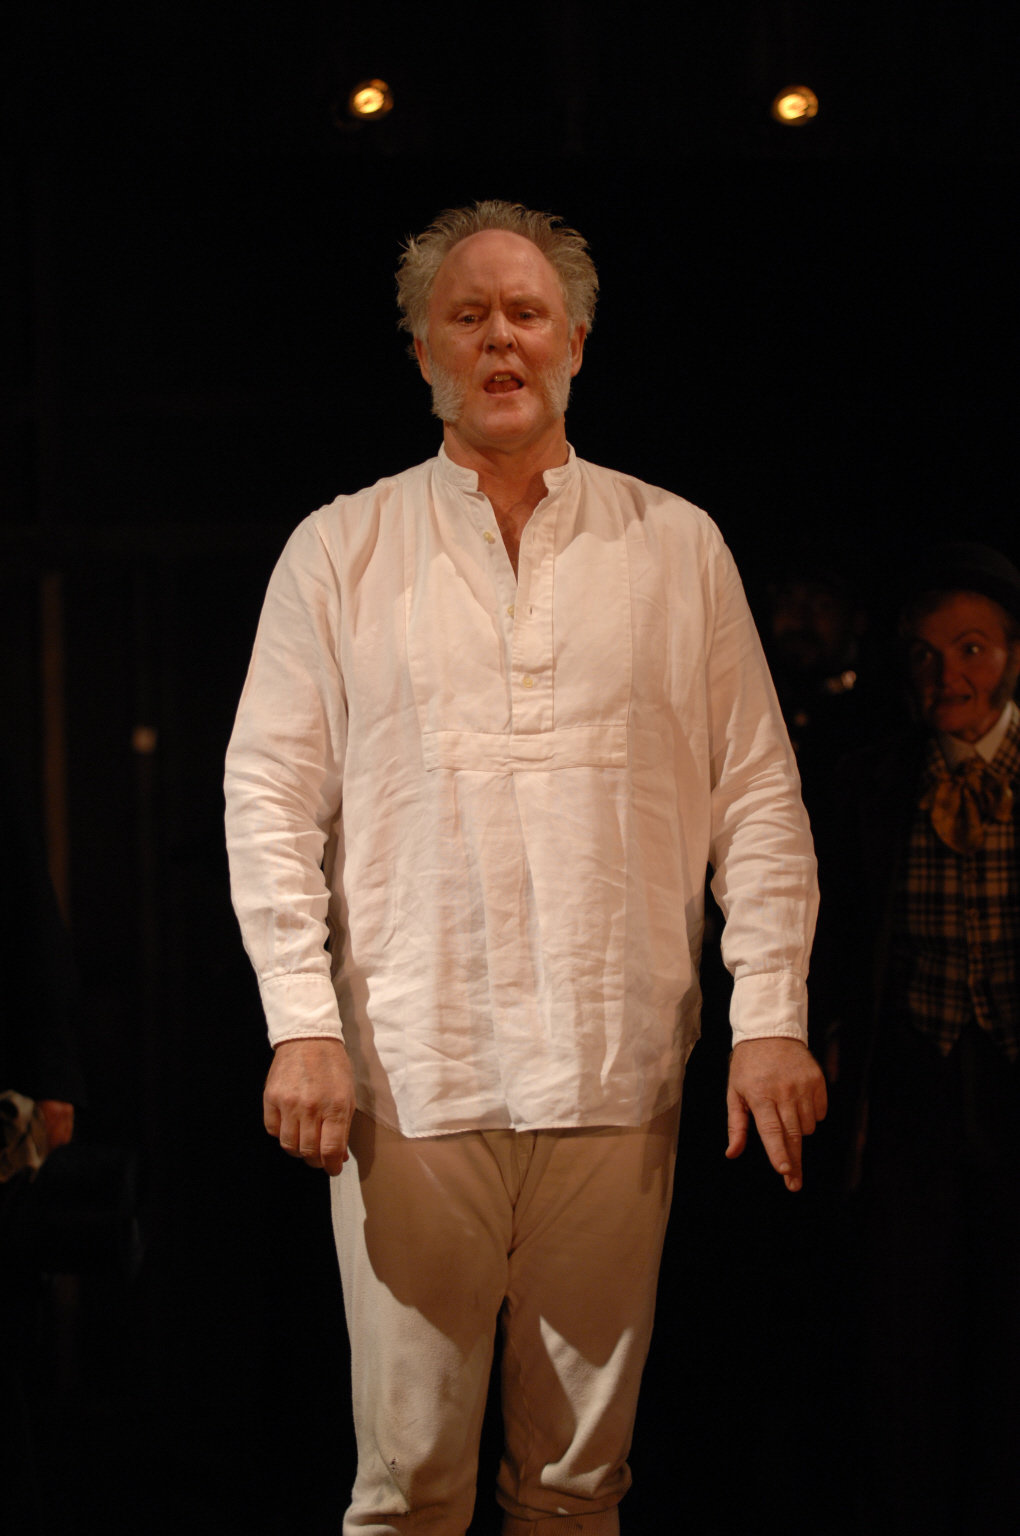 Malvolio dressed in his underclothes and looking confused, stands in the 2007 production of Twelfth Night.